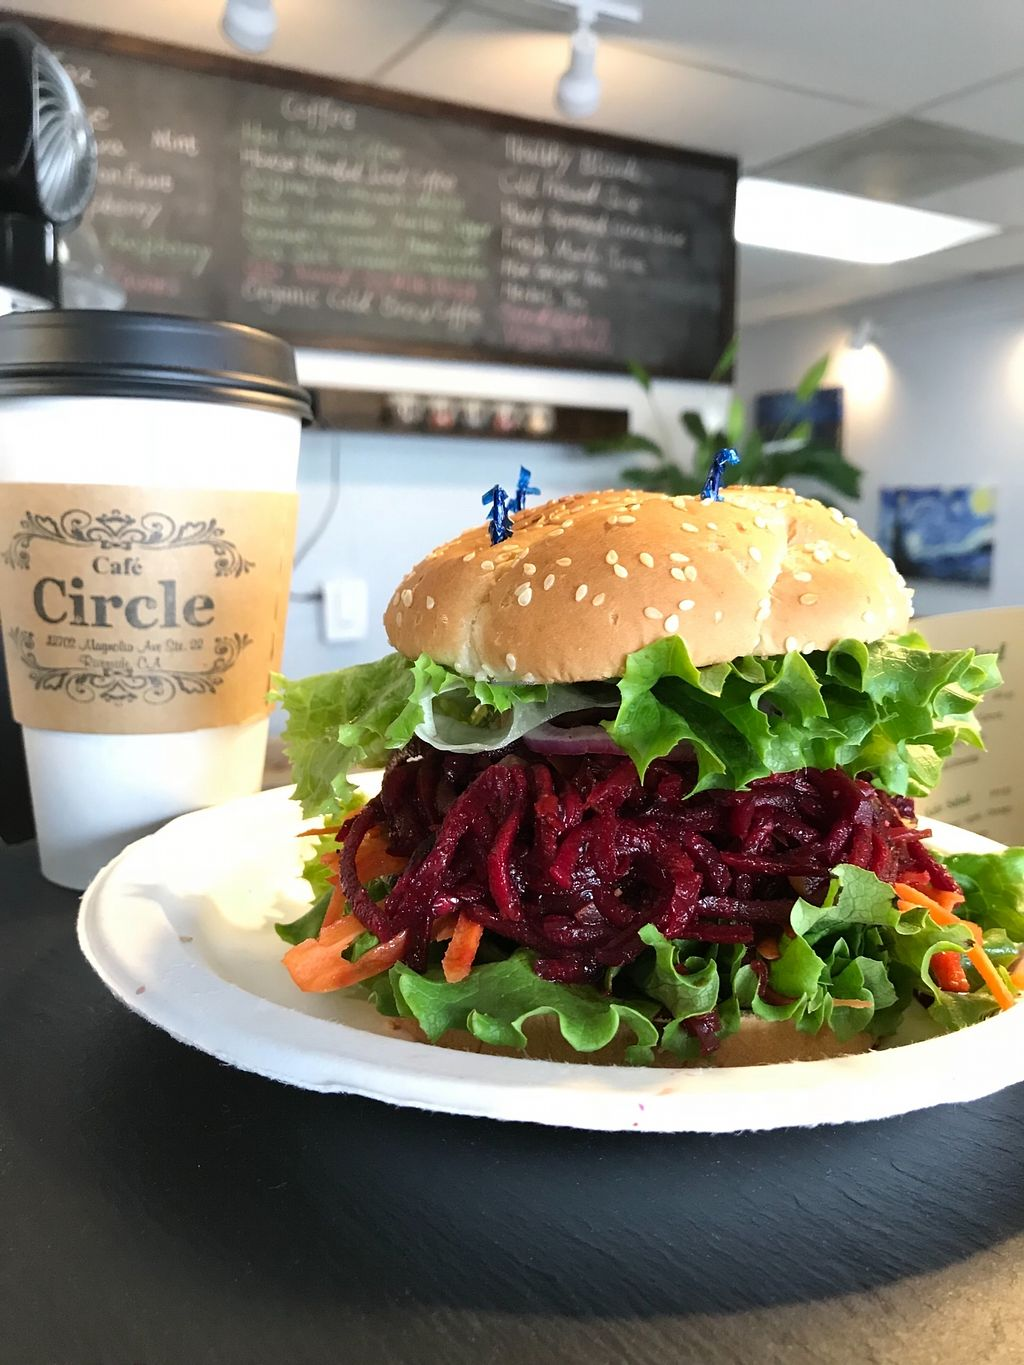 """Photo of Cafe Circle  by <a href=""""/members/profile/happy1"""">happy1</a> <br/>Vegan beet Burger  <br/> January 31, 2018  - <a href='/contact/abuse/image/106681/352973'>Report</a>"""